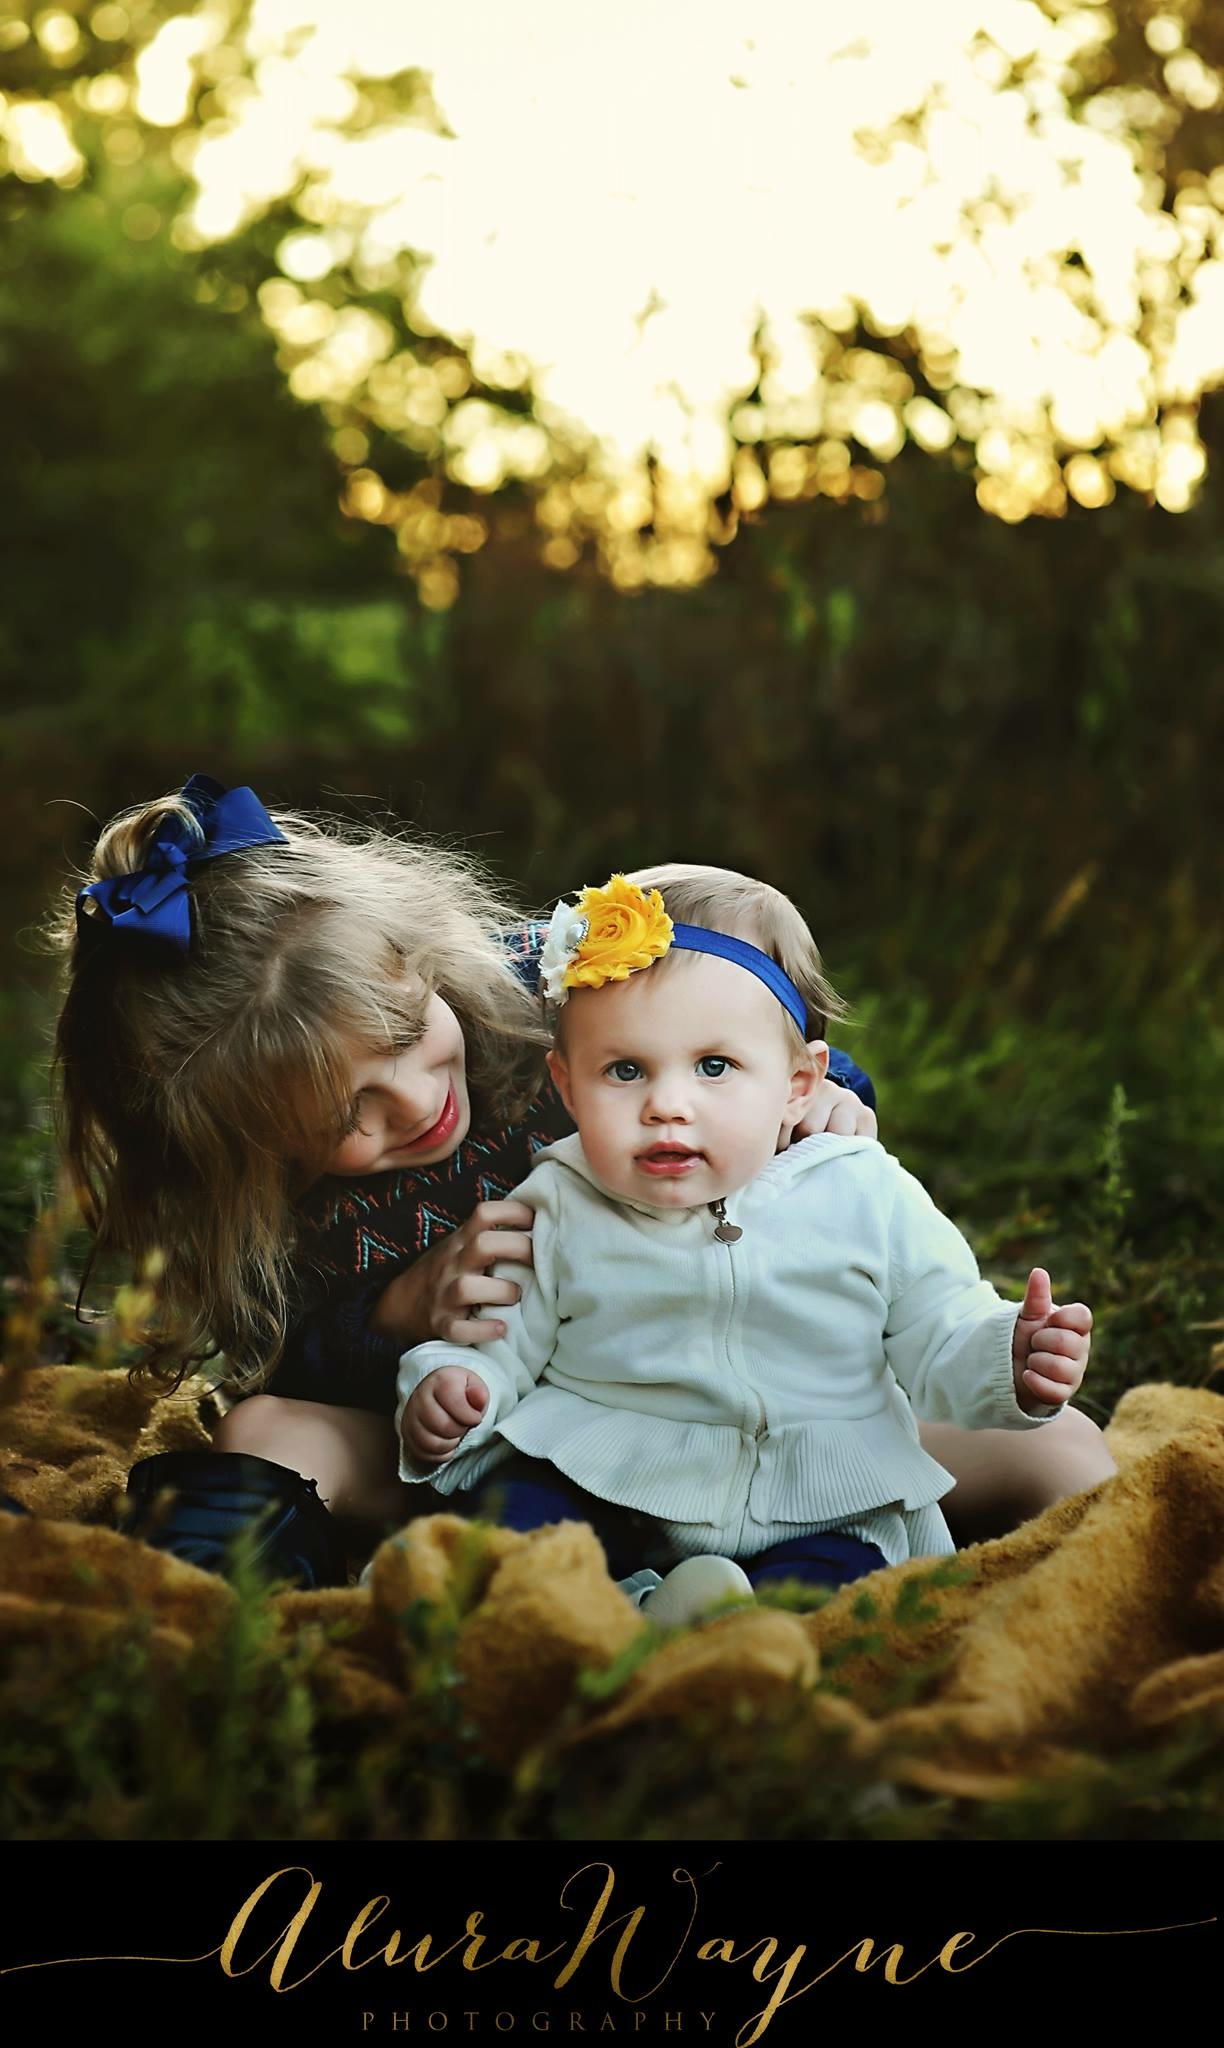 These sisters were too adorable for words!